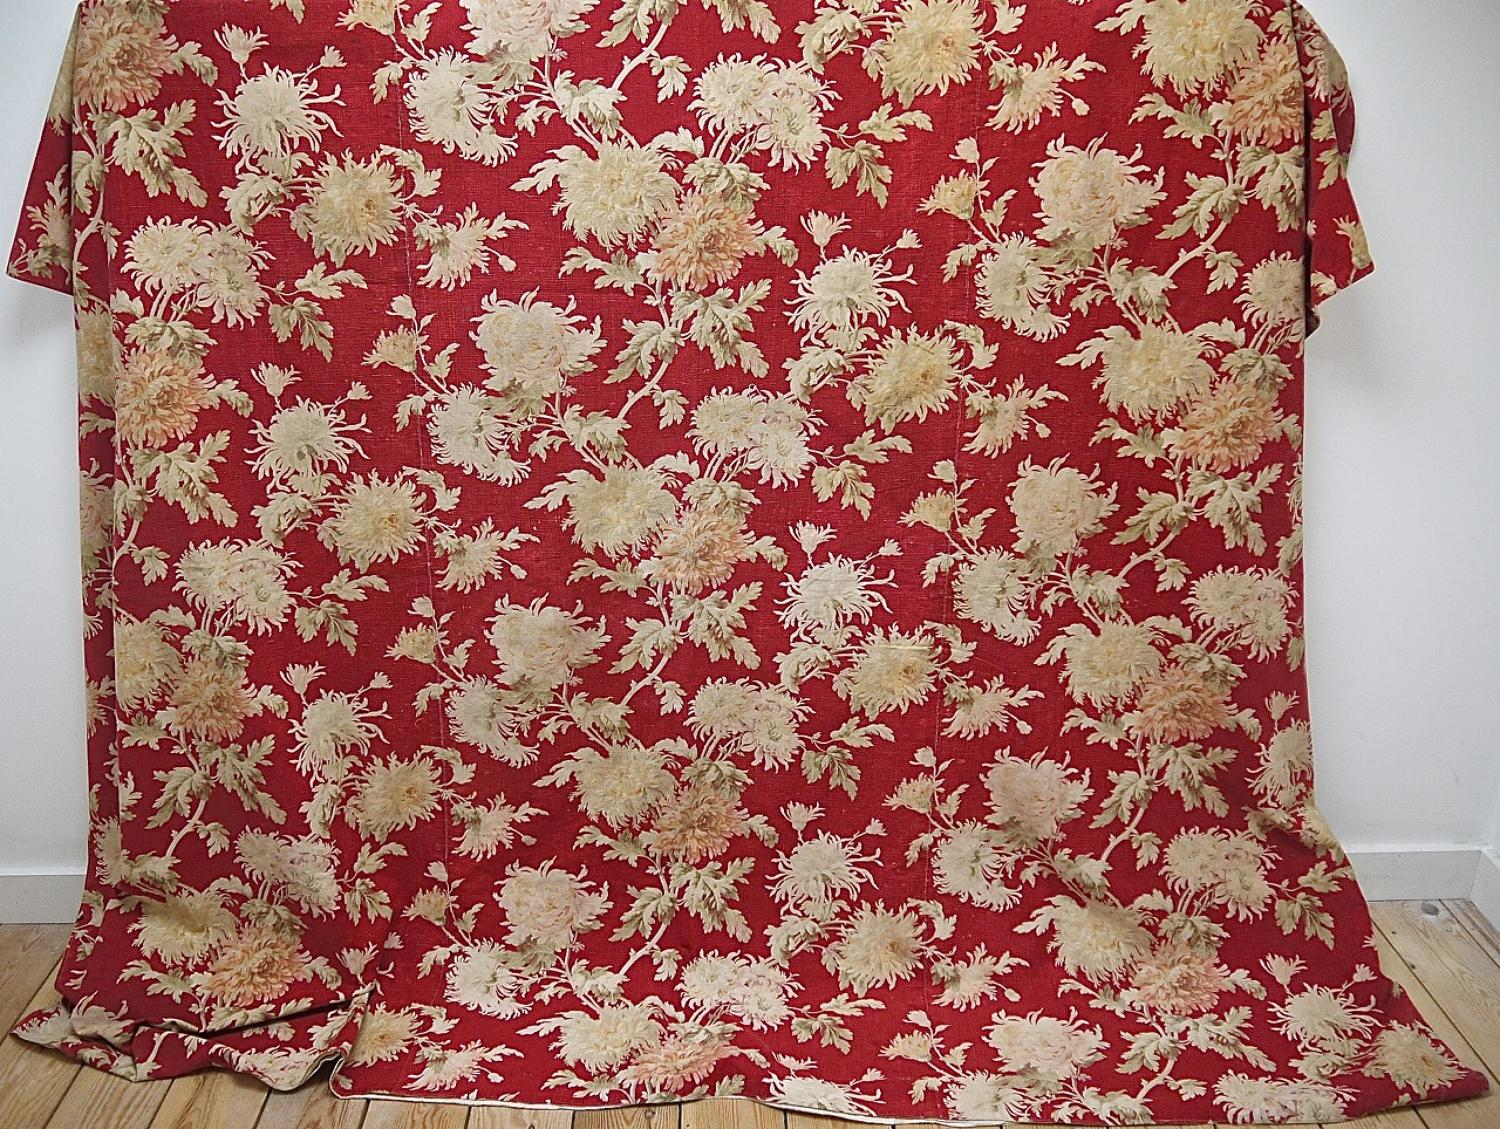 Late 19th century French Large-scale cotton throw